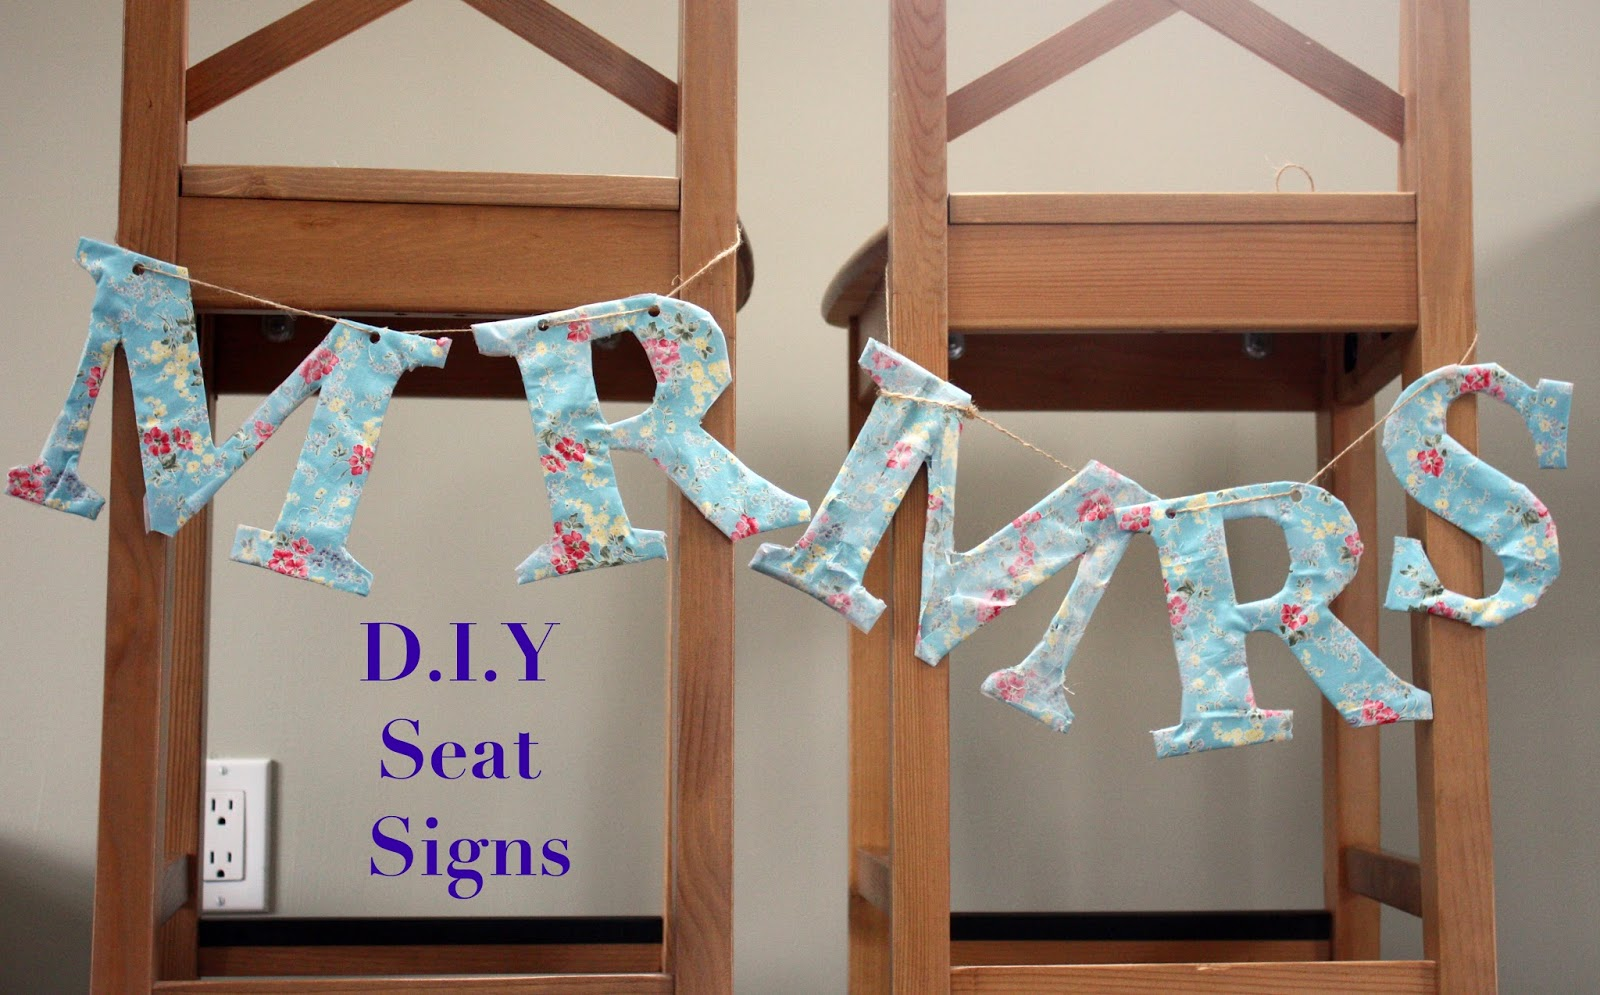 D.I.Y wedding seat sign letters